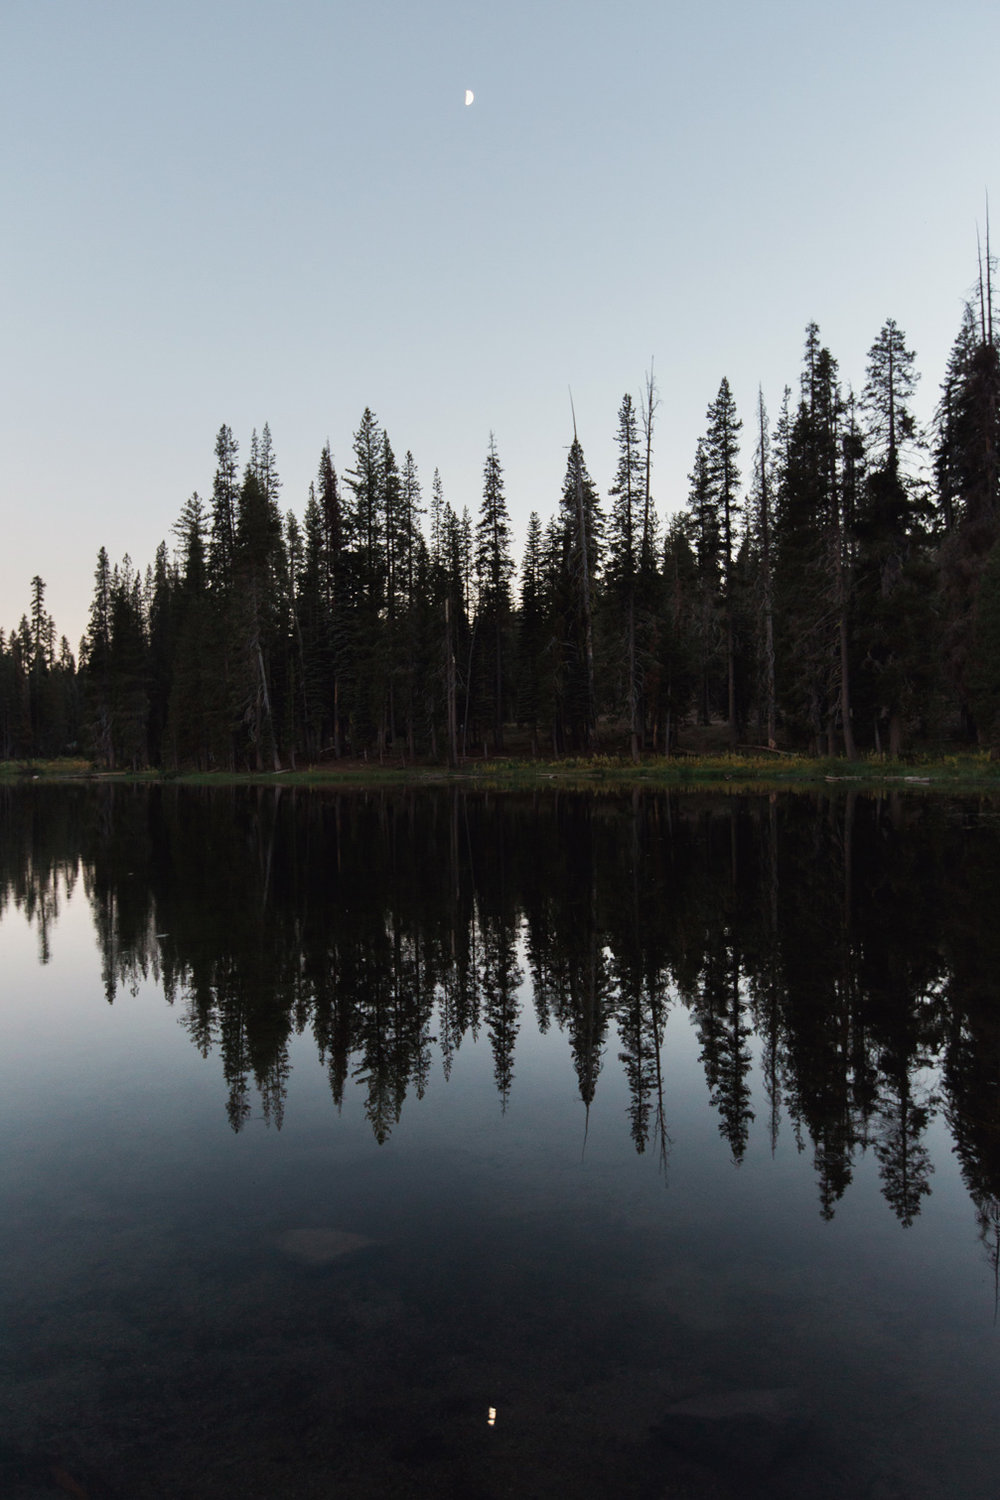 CindyGiovagnoli_Lassen_Volcanic_National_Park_California_camp_road_trip-027.jpg